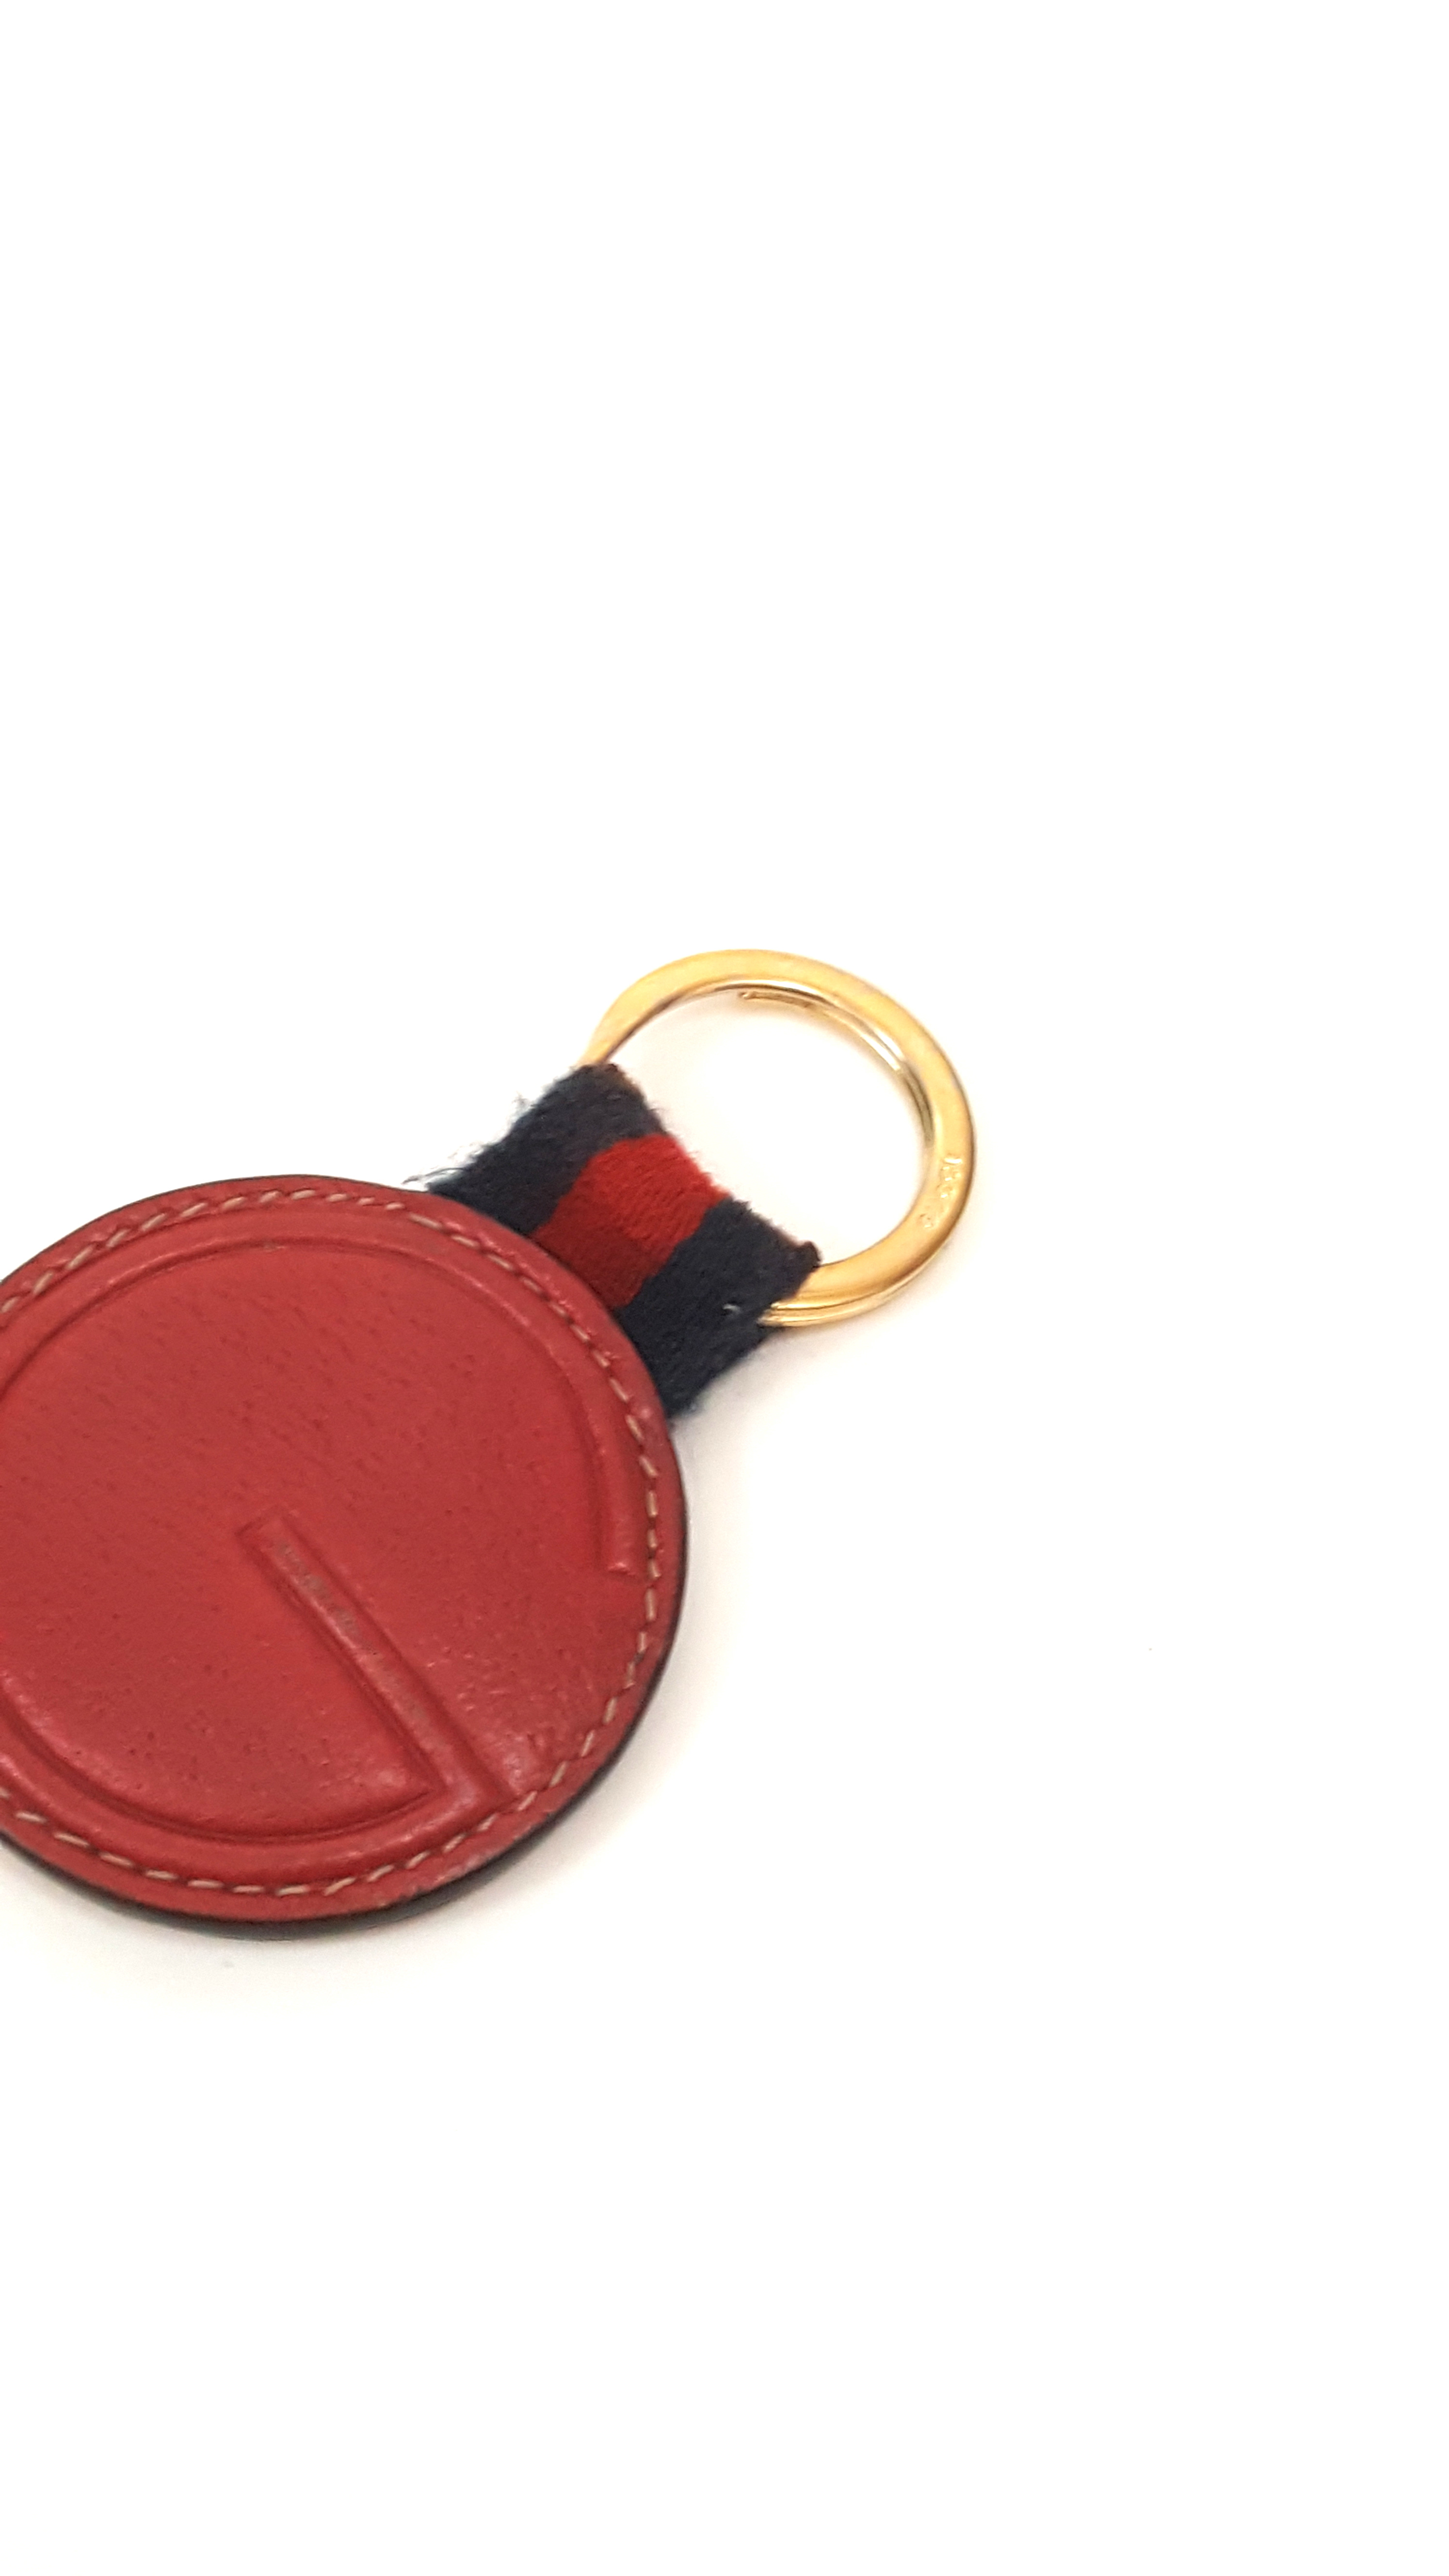 23a4fa17b21 Gucci Red leather Key Chain Key ring Size one size - Jewelry ...